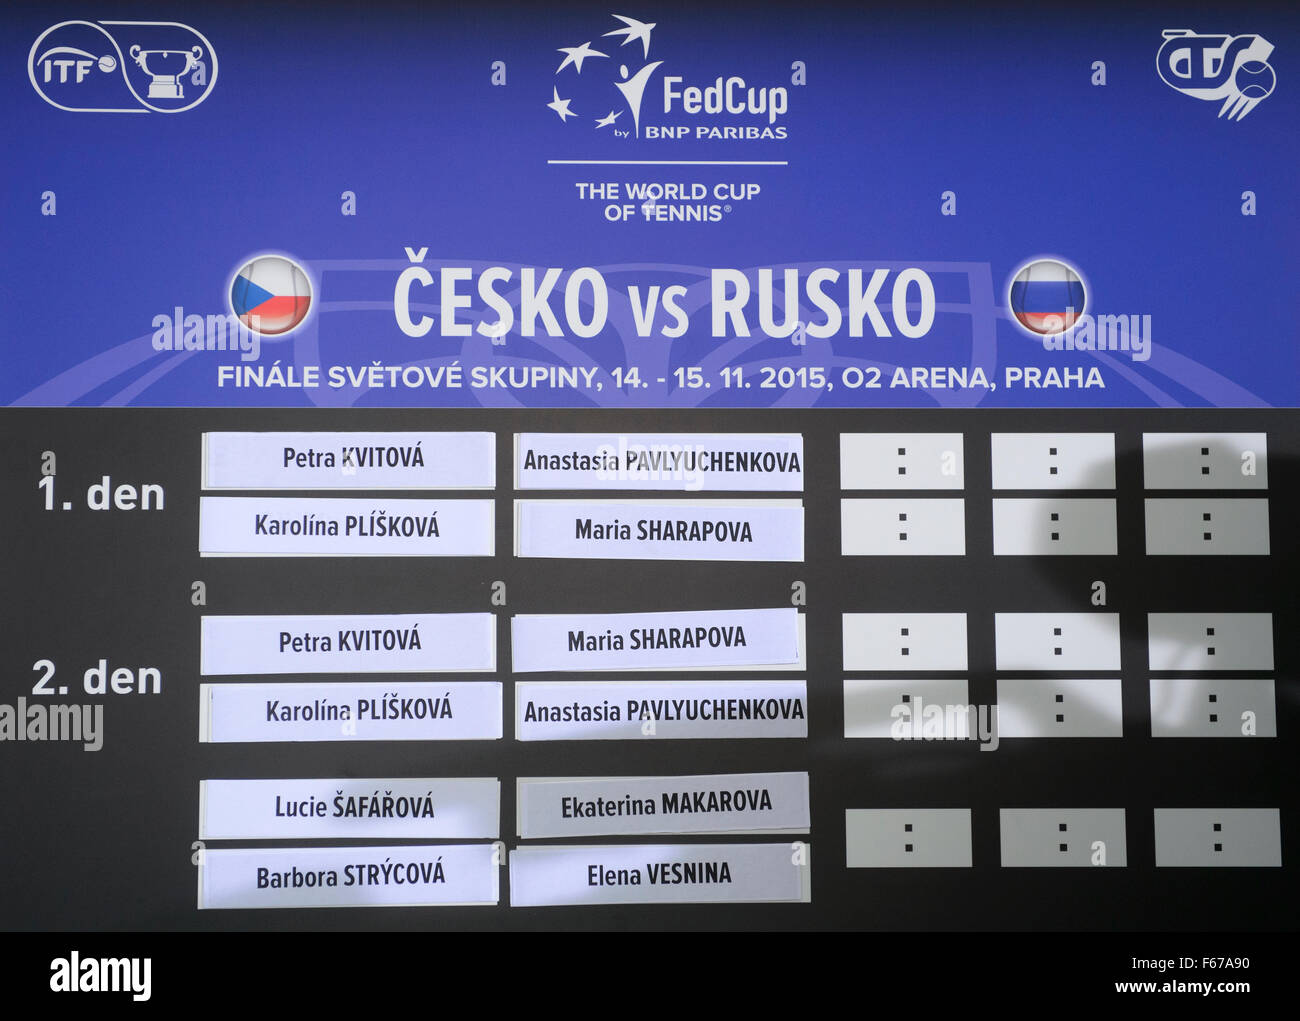 Tennis Draw Of Fed Cup Final Czech Republic Russia Takes Place At